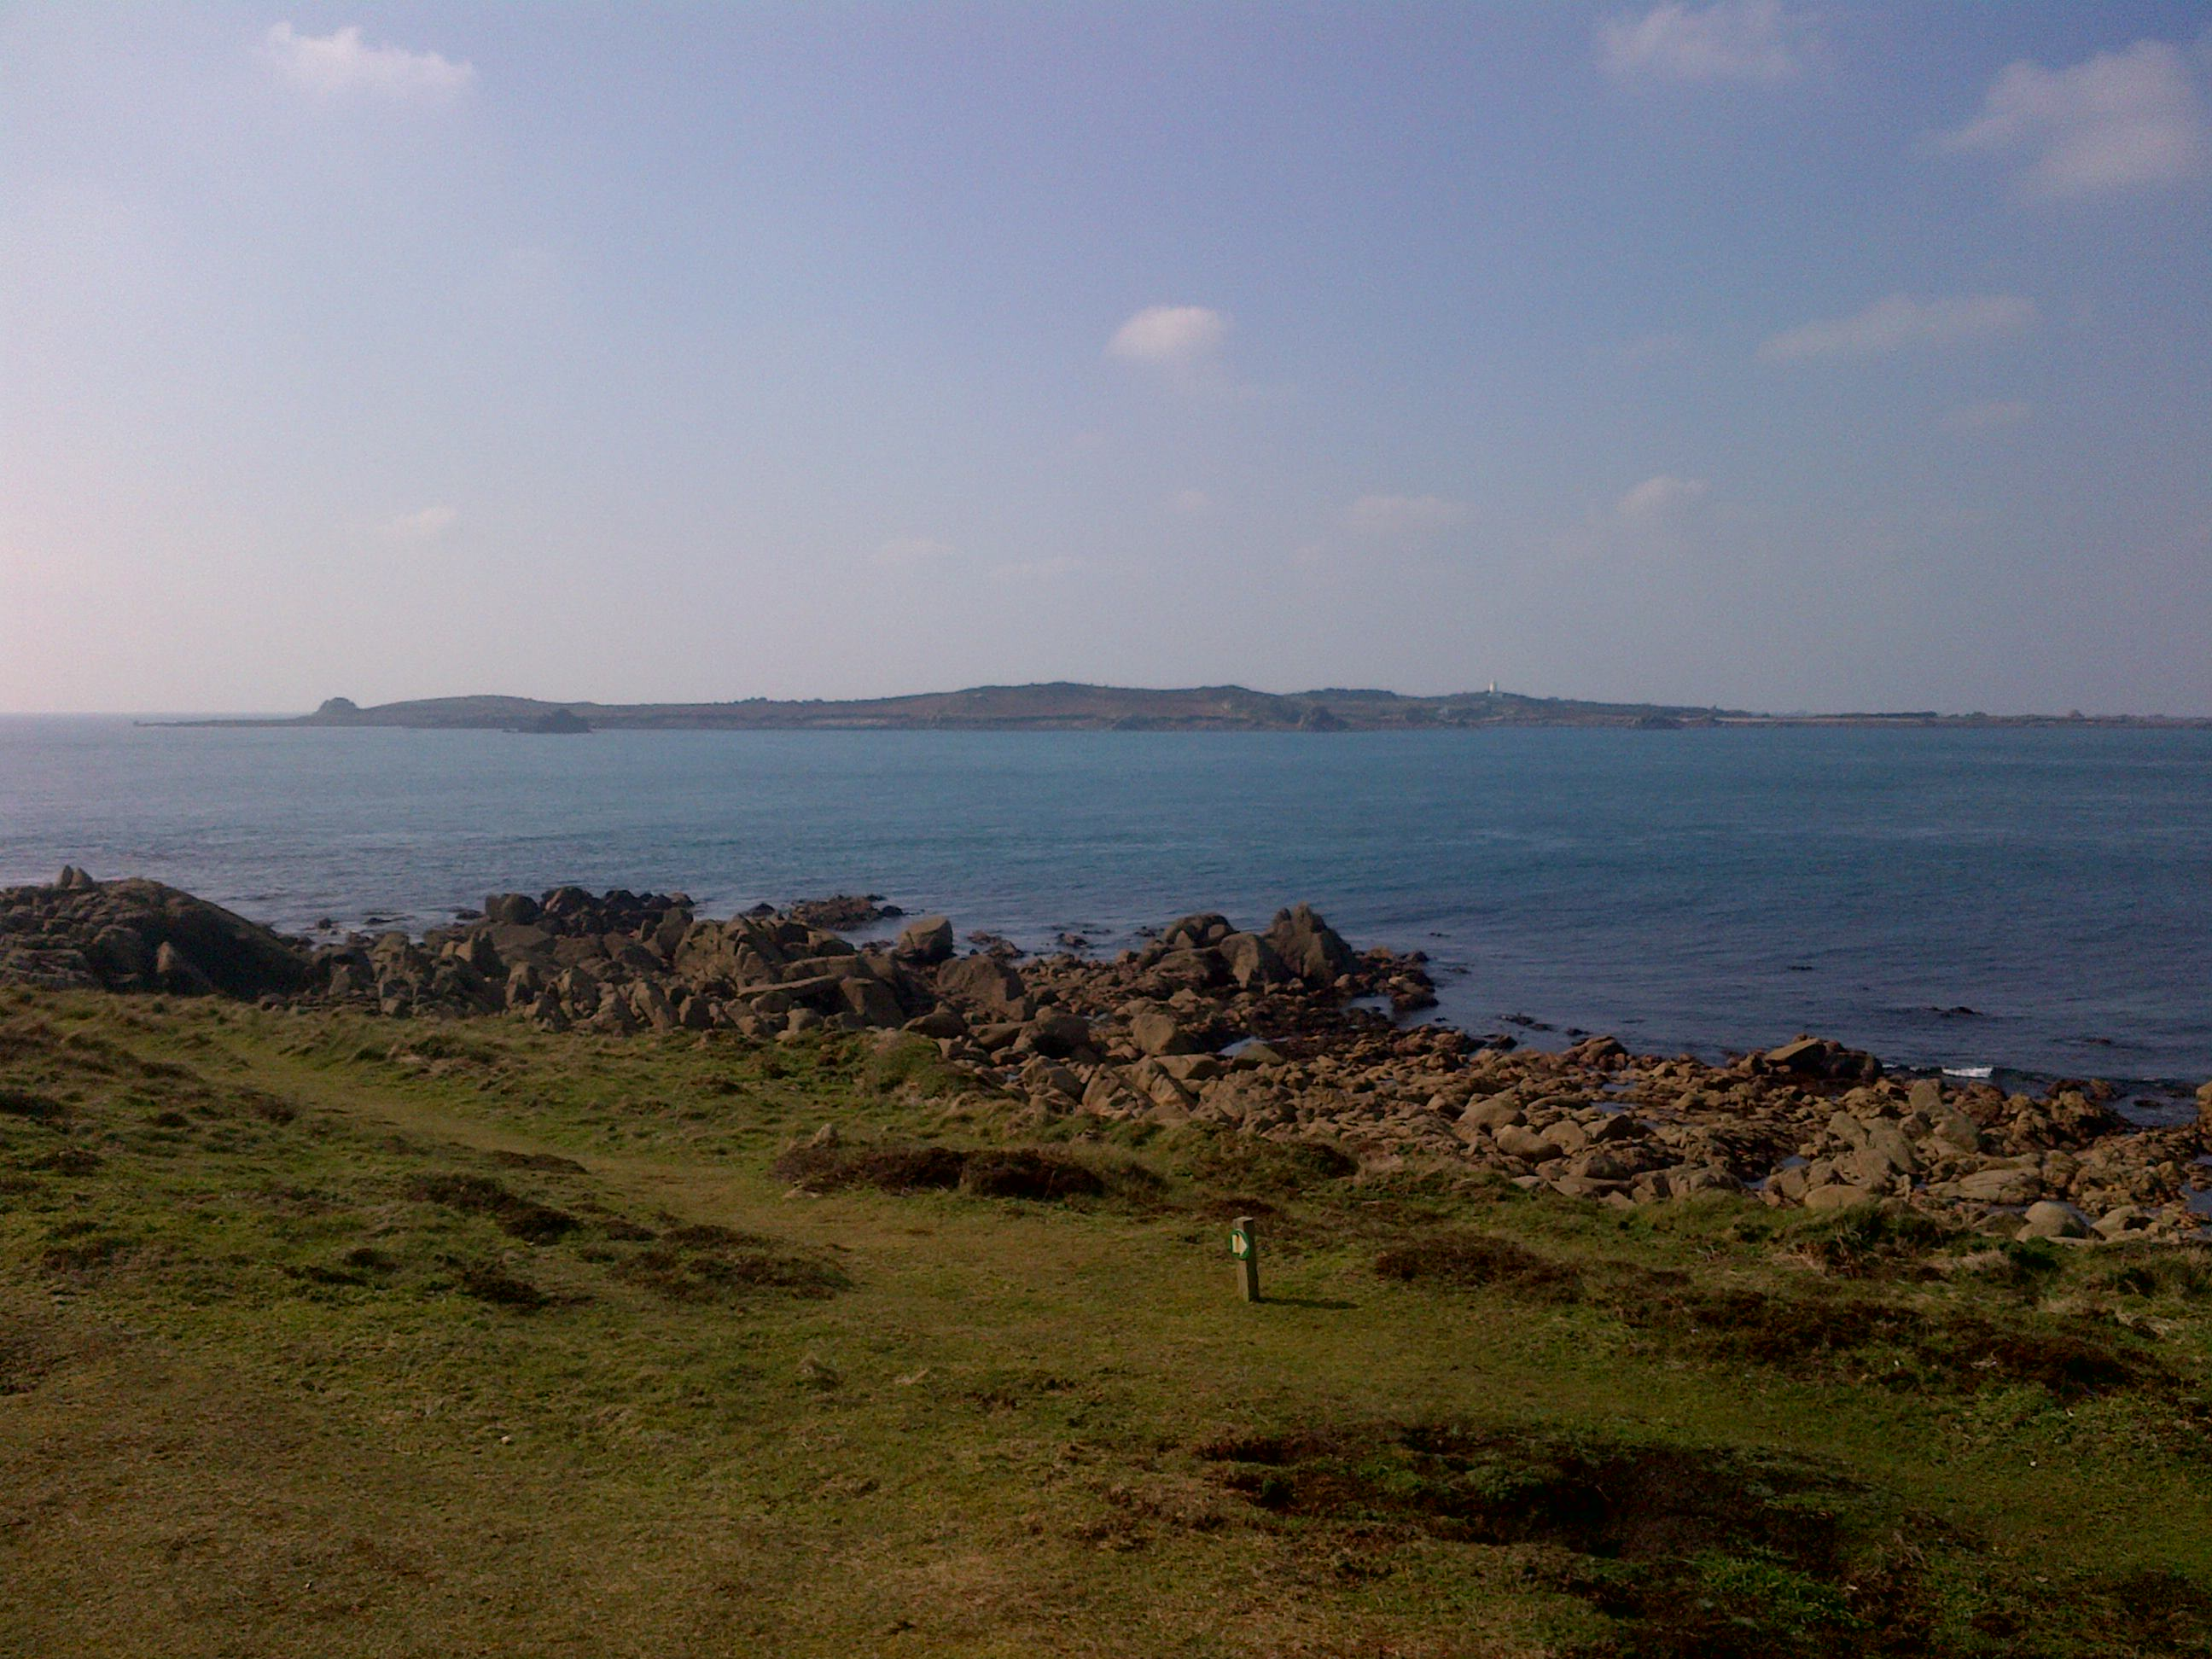 View from The Garrison, St Mary's, Isles of Scilly